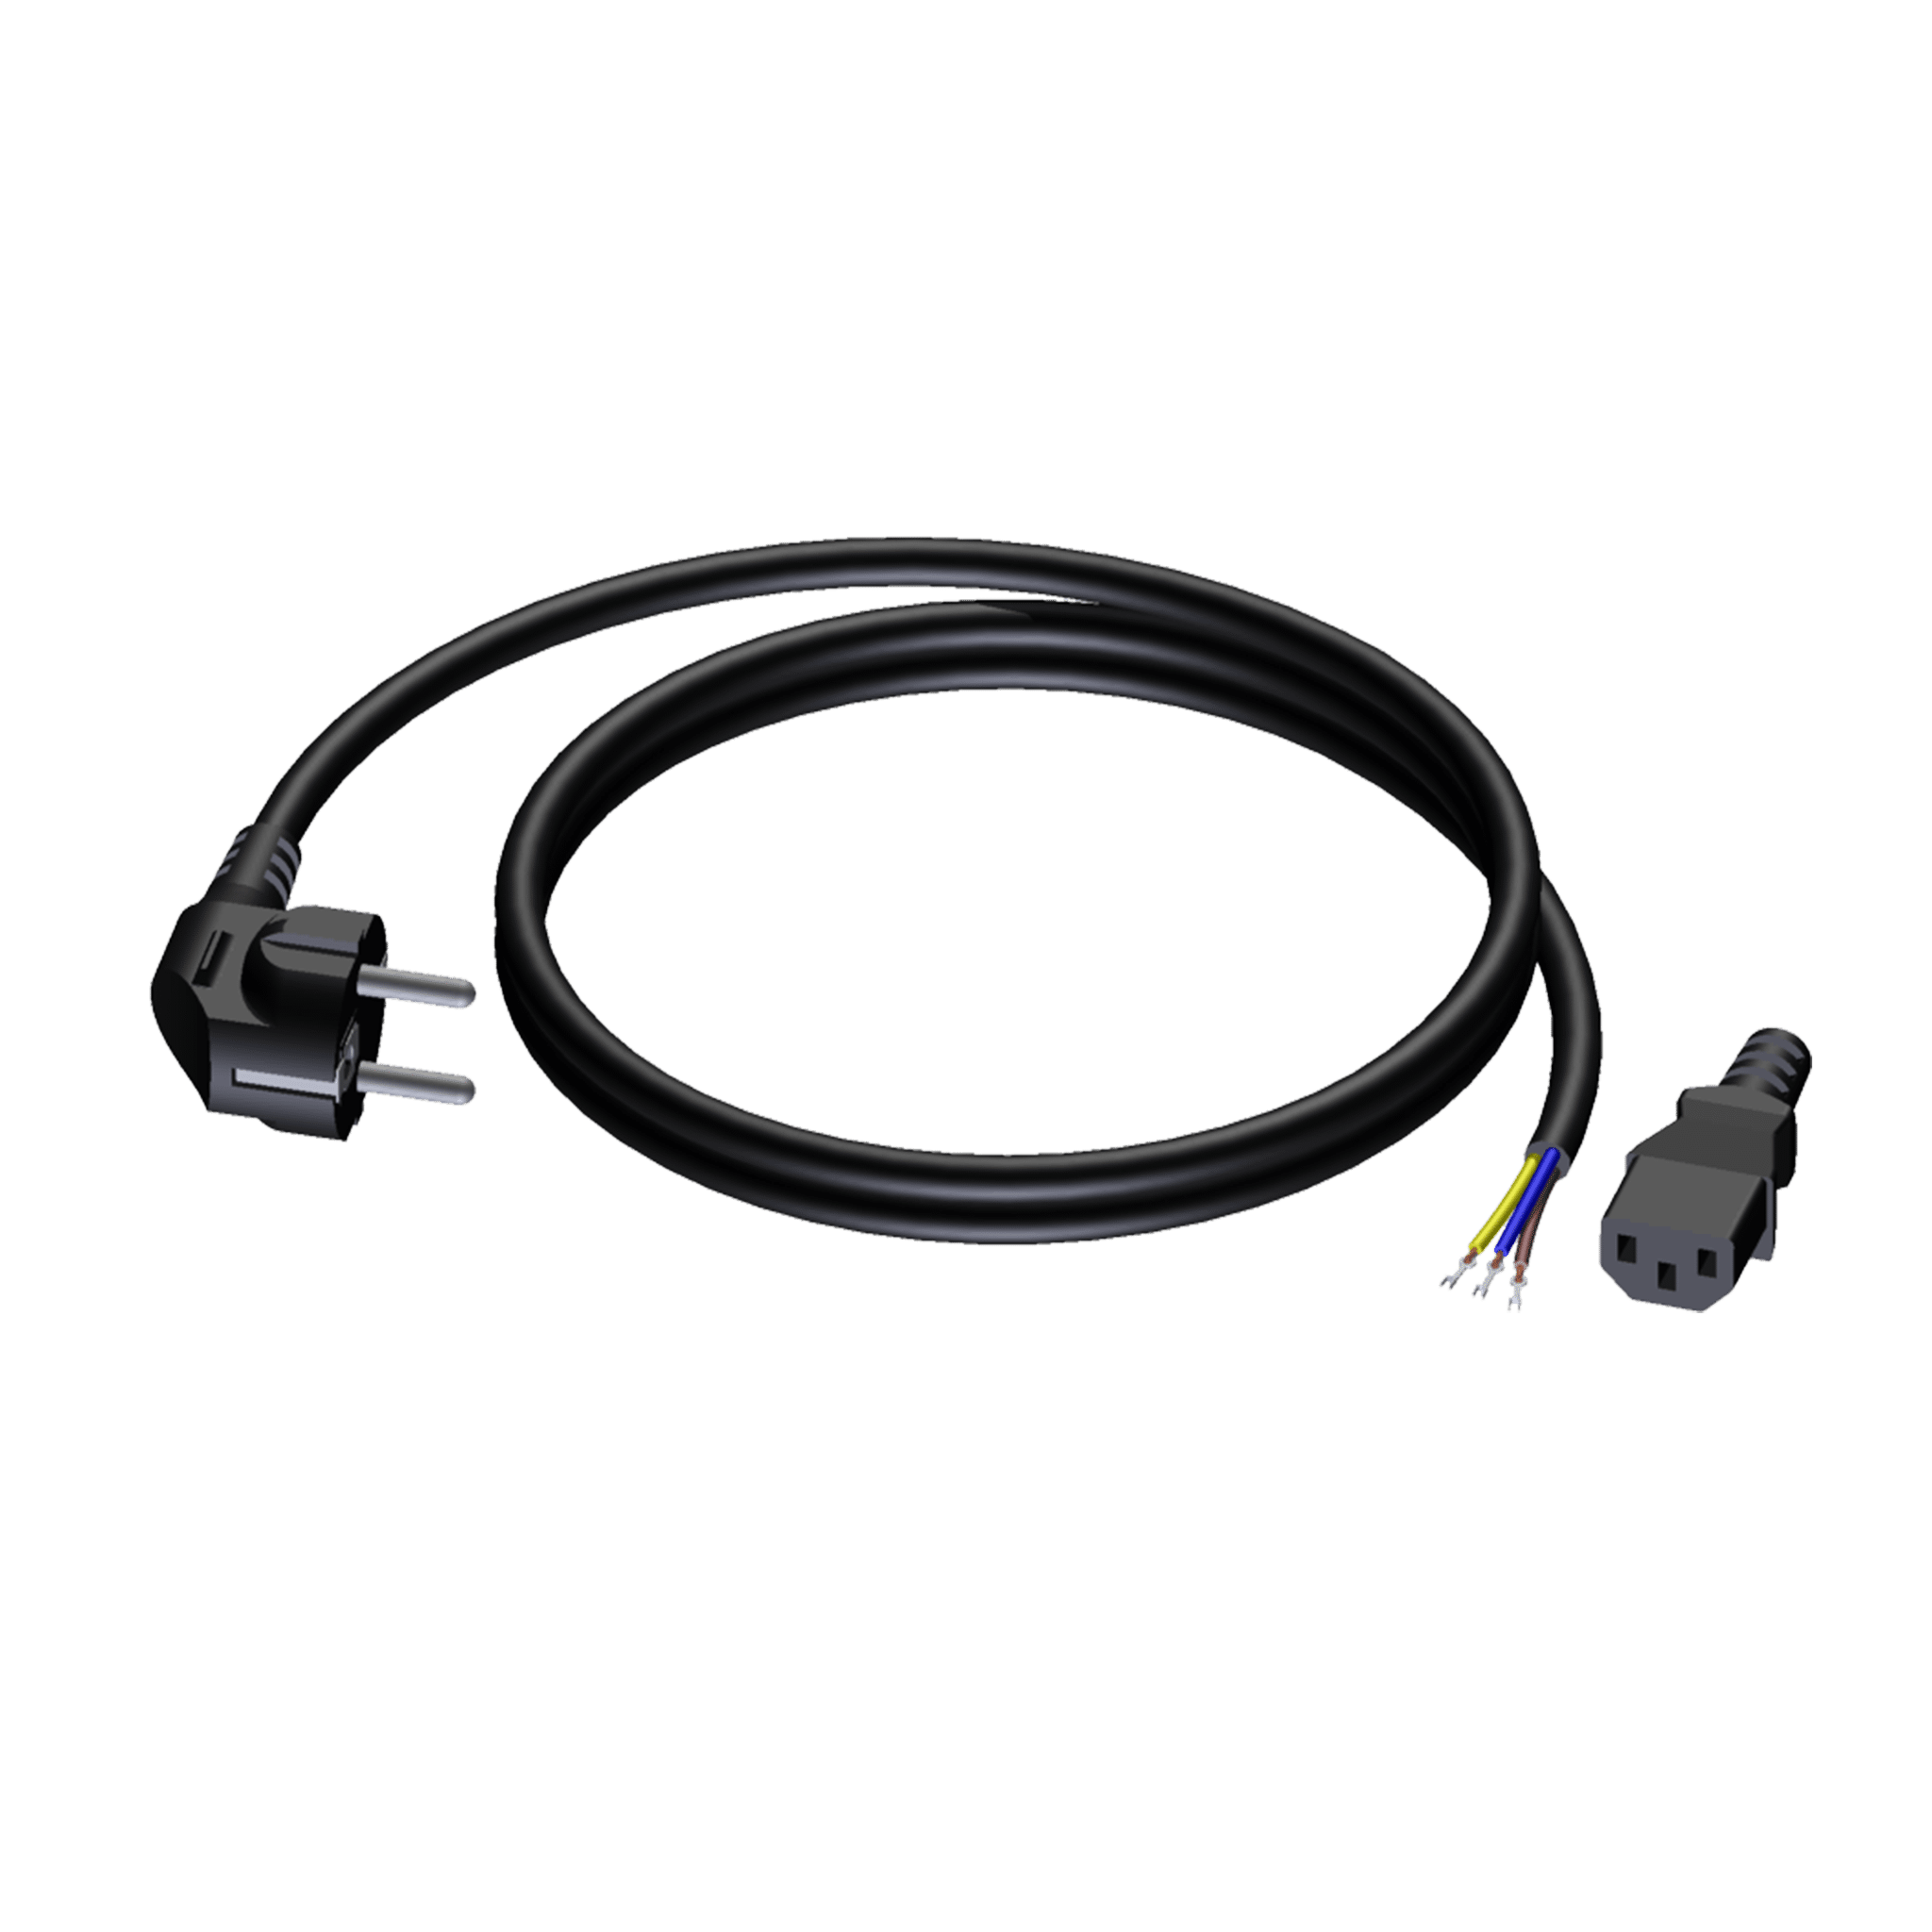 CAB491 - Power cable - schuko male - euro power female - open ended - 3 x 1.5 mm²